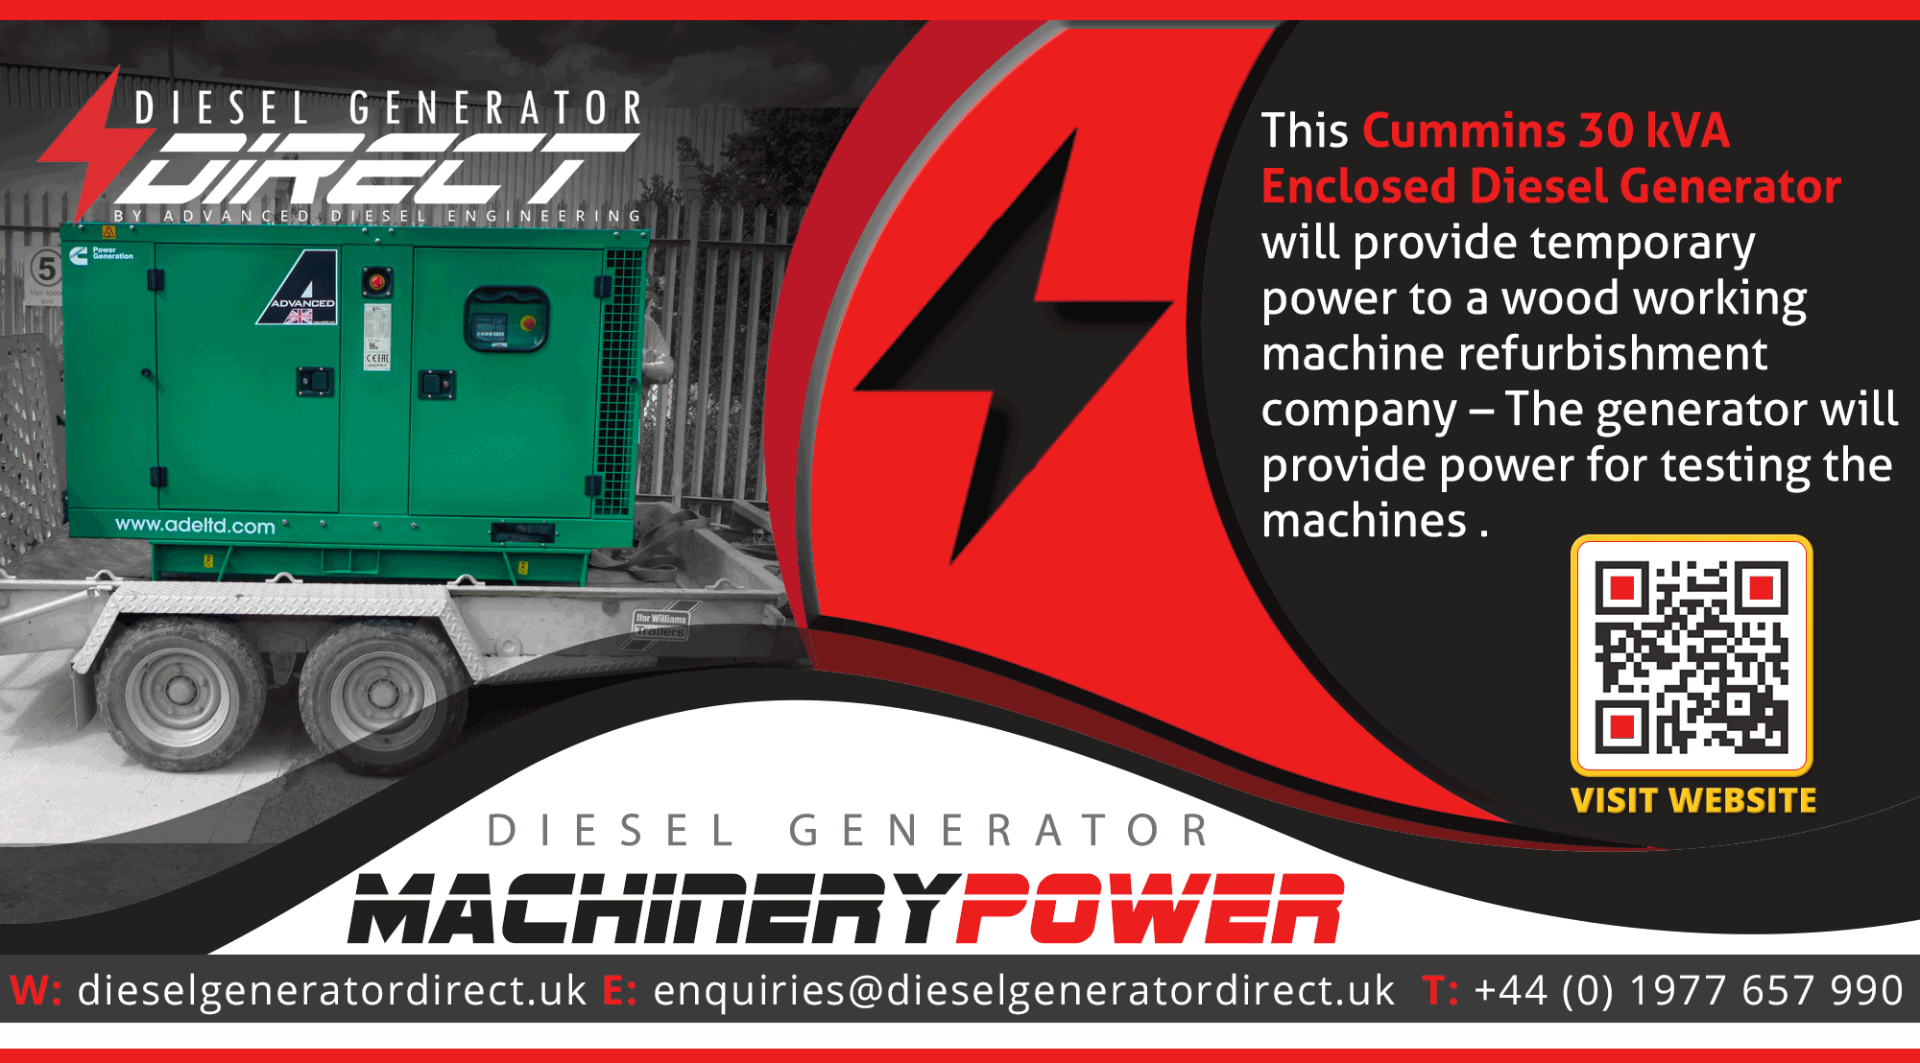 gensets for machinery power